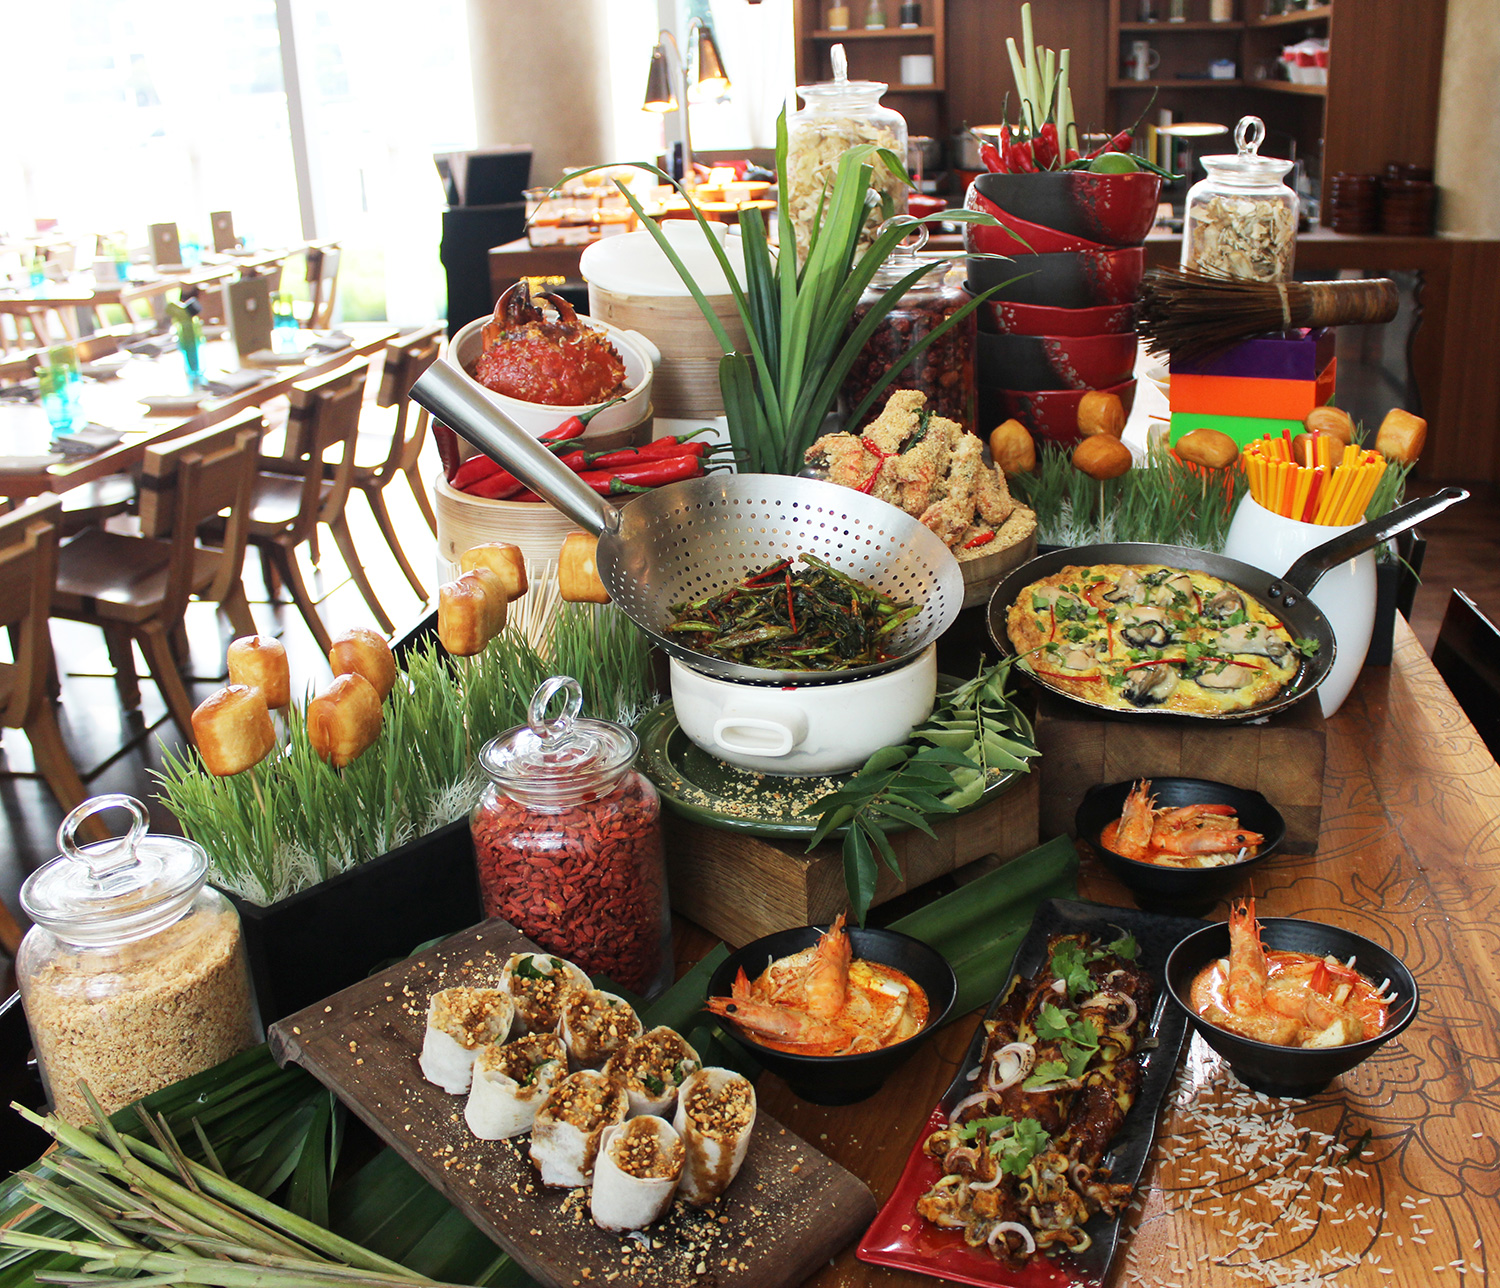 Kitchen Table With Food: Celebrate The Golden Jubilee At The Kitchen Table – Lion Remix